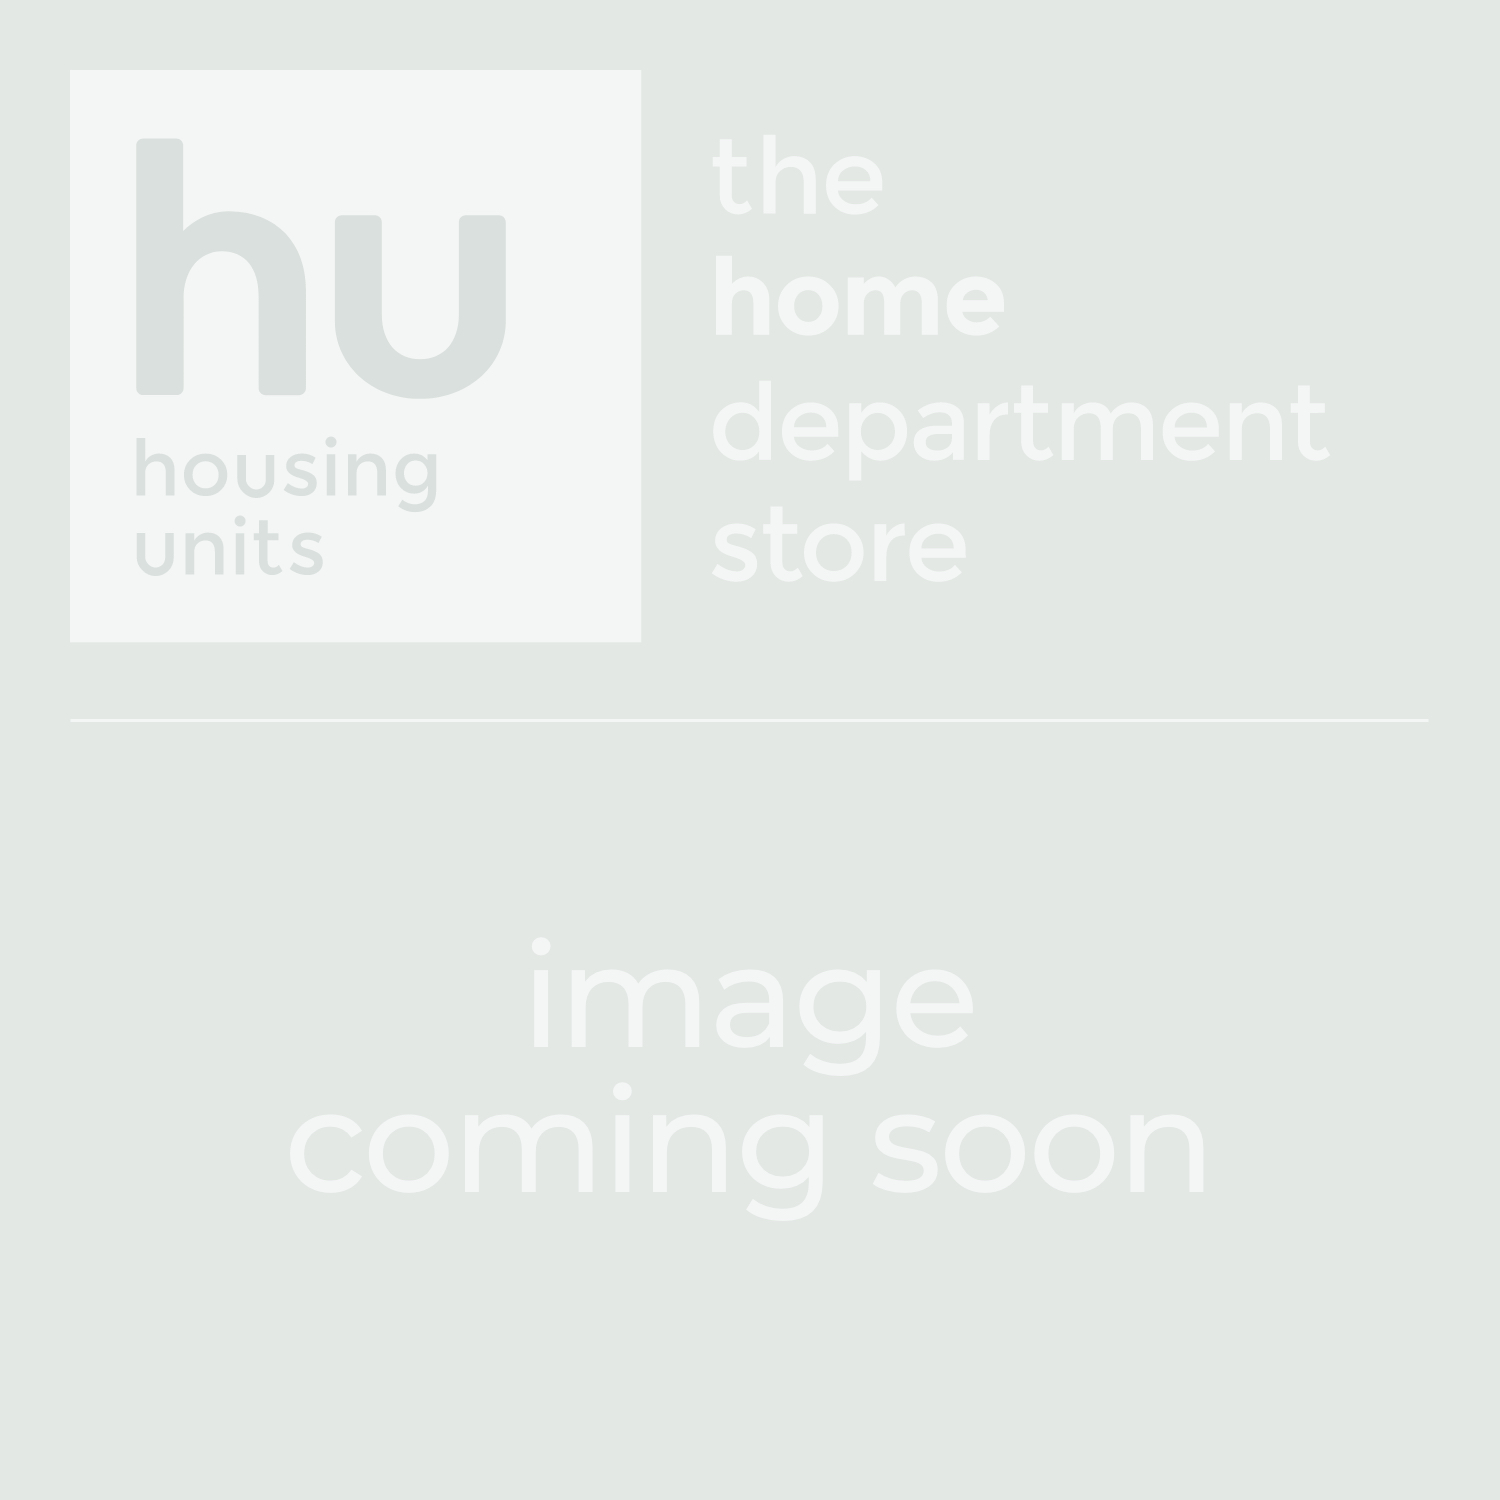 Avilna Grey Textured Electric Fire Suite - Lifestyle | Housing Units